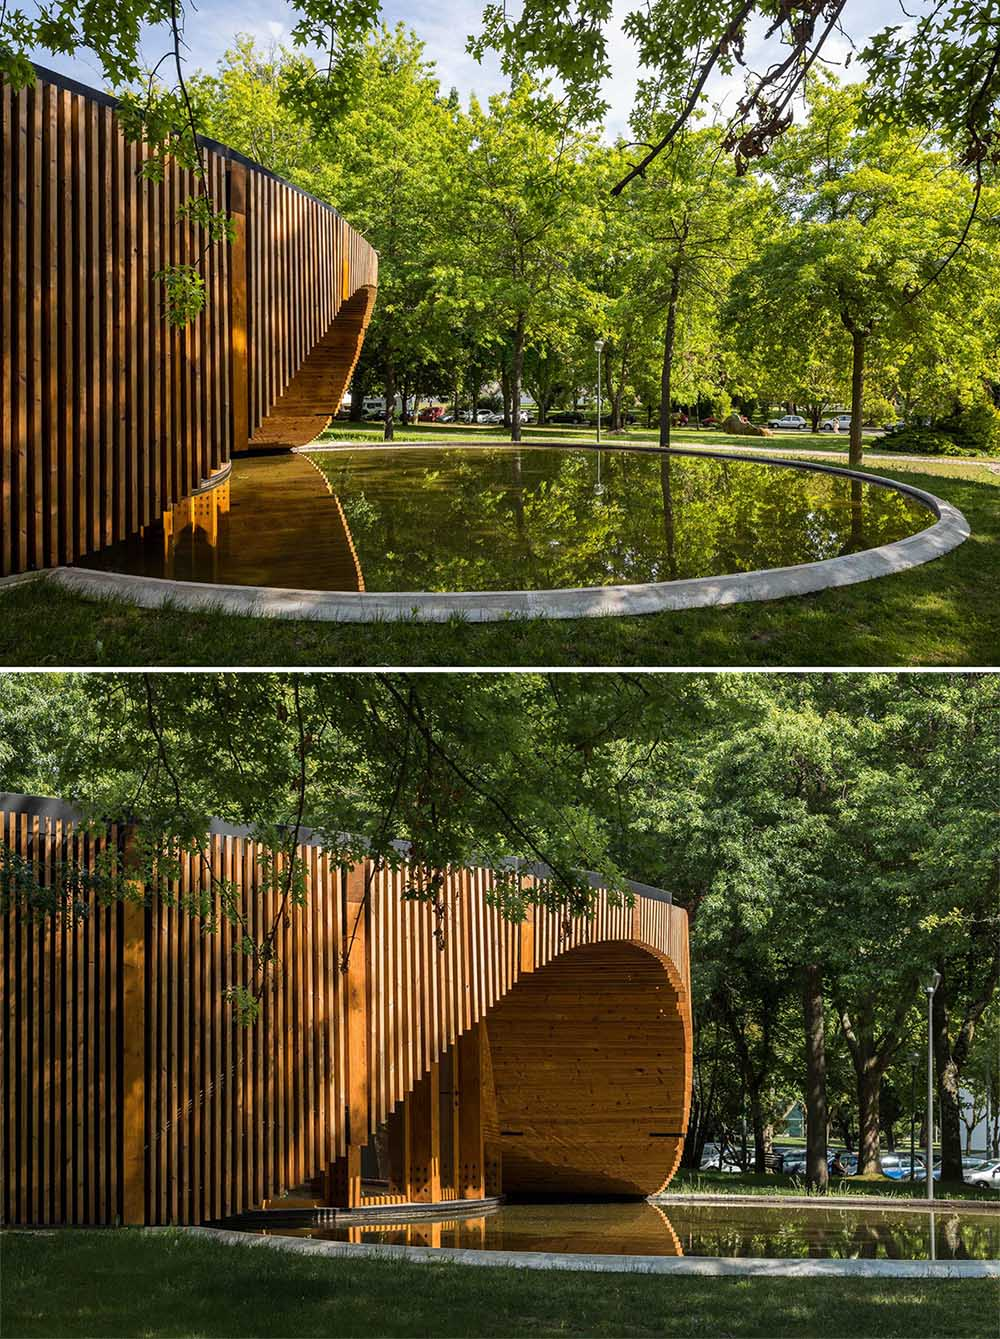 The circular design of this modern building is accented by a reflection pool and wood slat exterior.